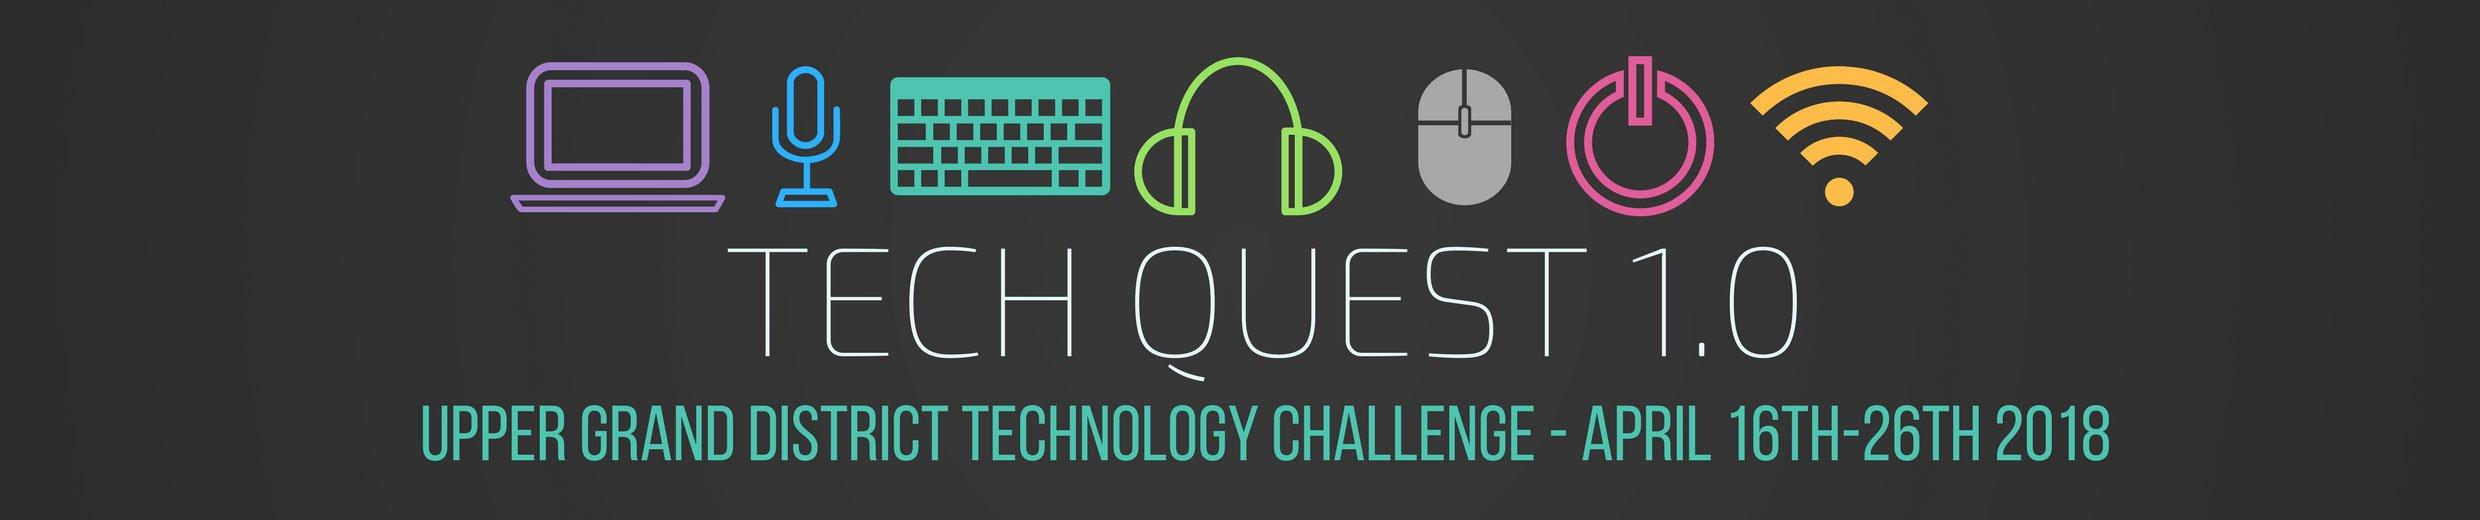 Tech Quest Banner Image